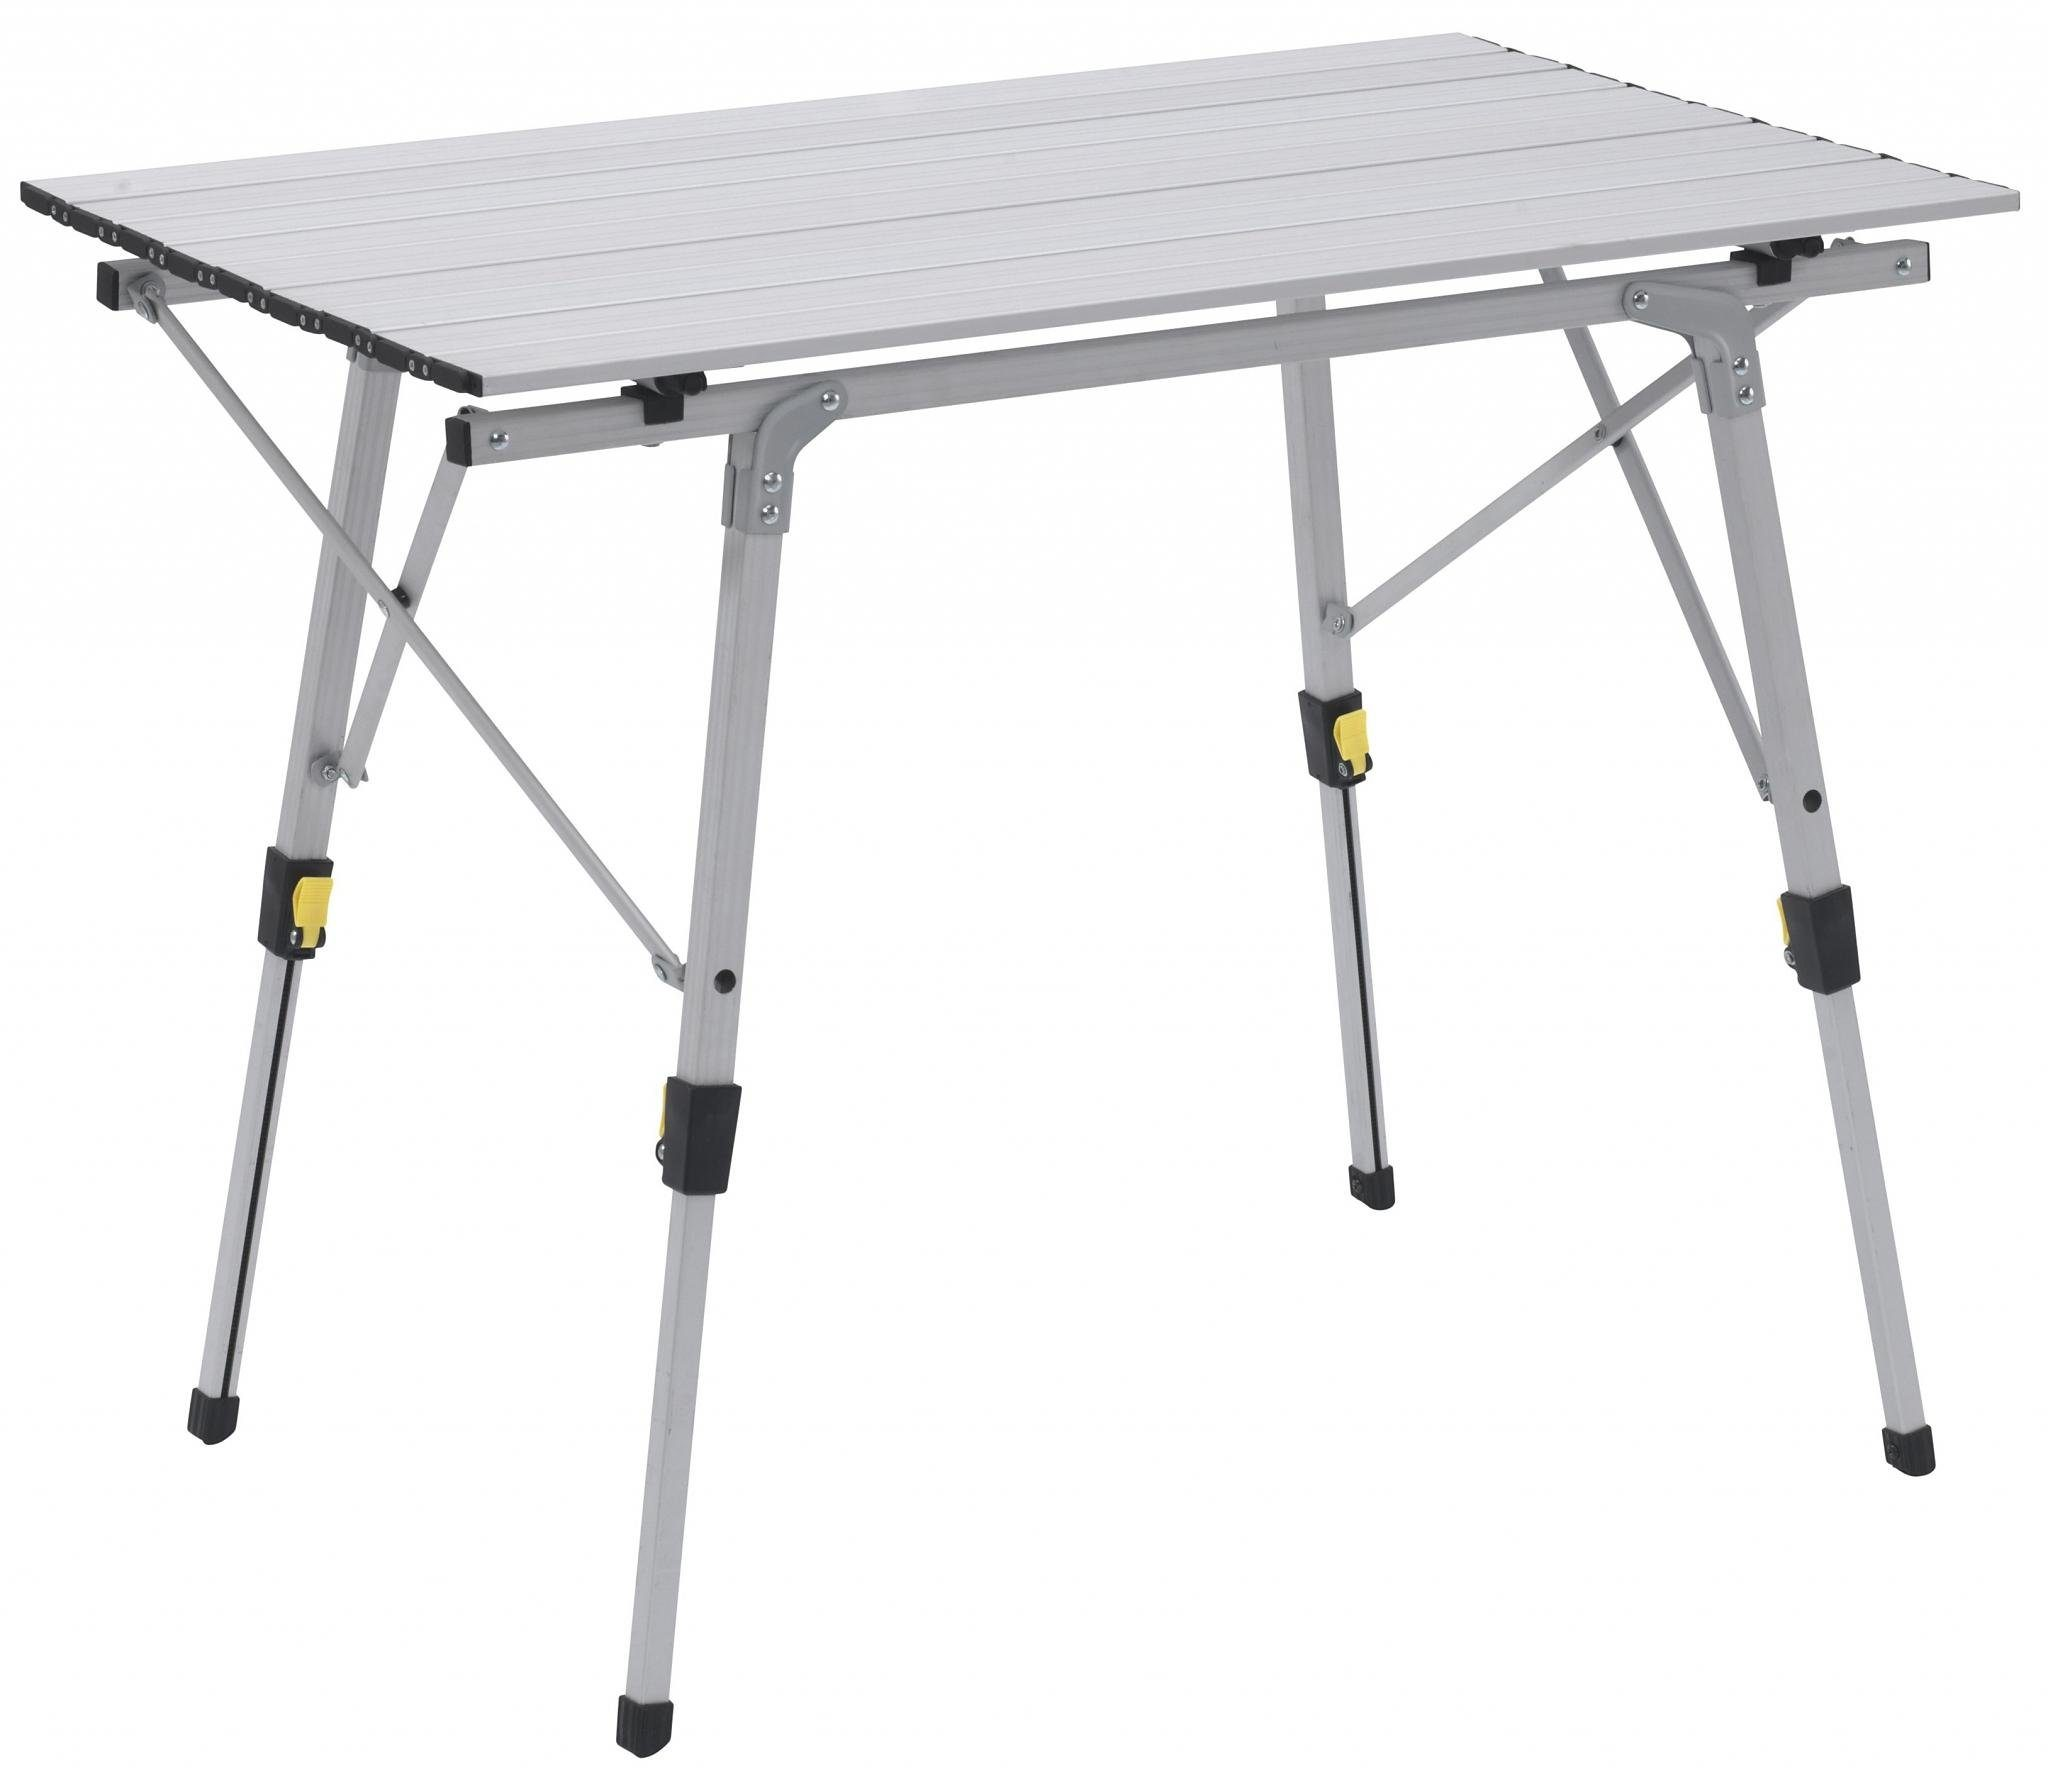 Outwell Camping Tisch »Canmore M Table«